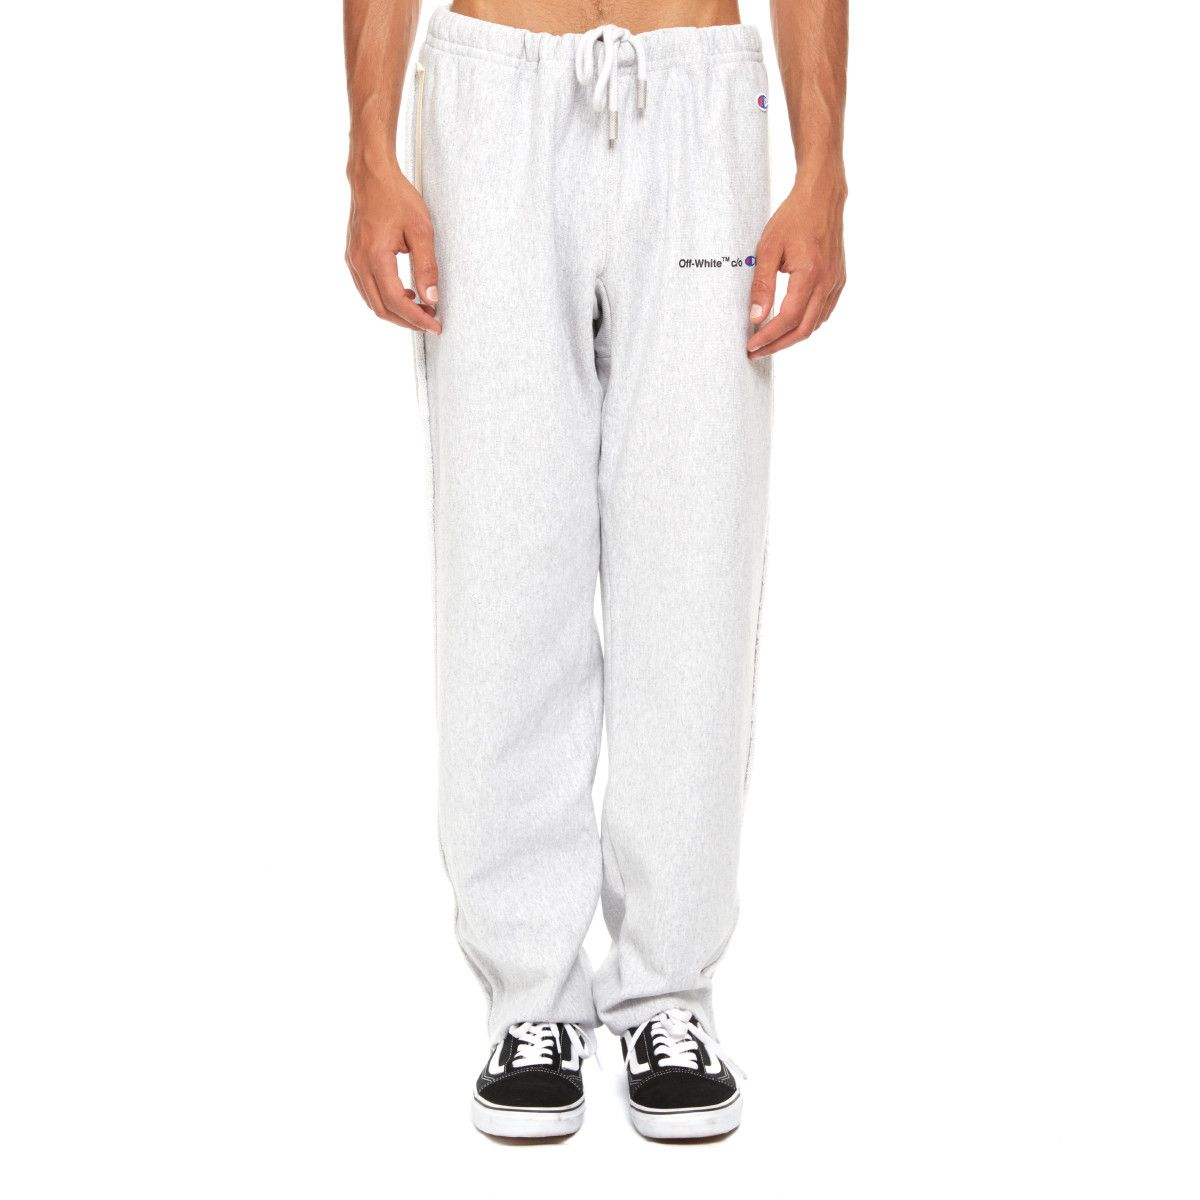 77d3c9548cfdce Champion sweatpants from the S/S2018 Off-White c/o Virgil Abloh collection  in grey